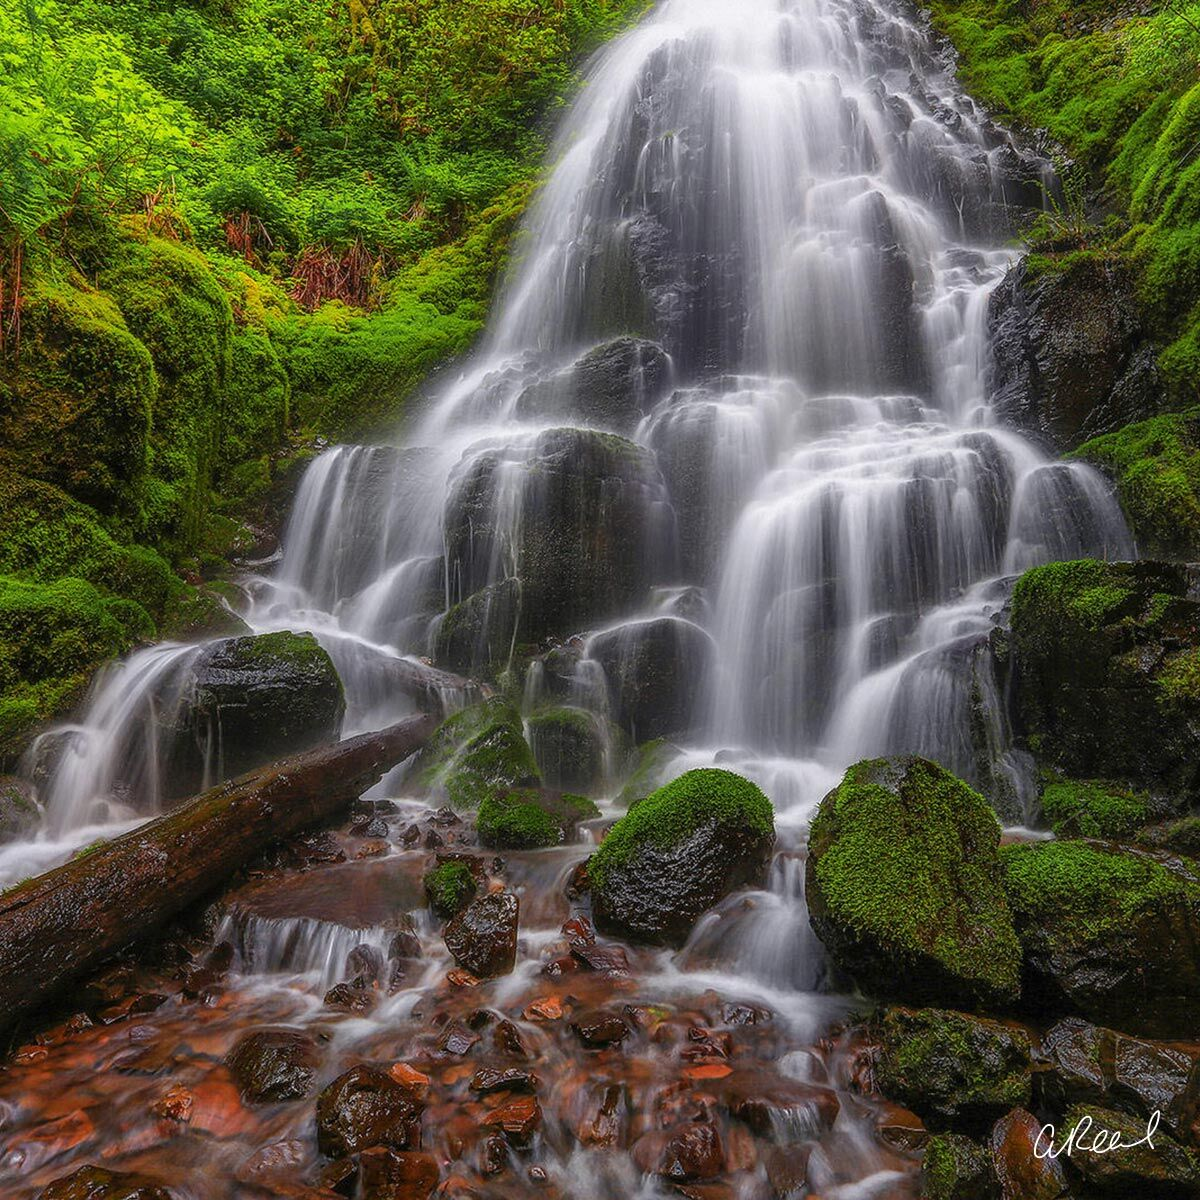 A fine art photograph of Fairy Falls in the Columbia River Gorge of Oregon State.